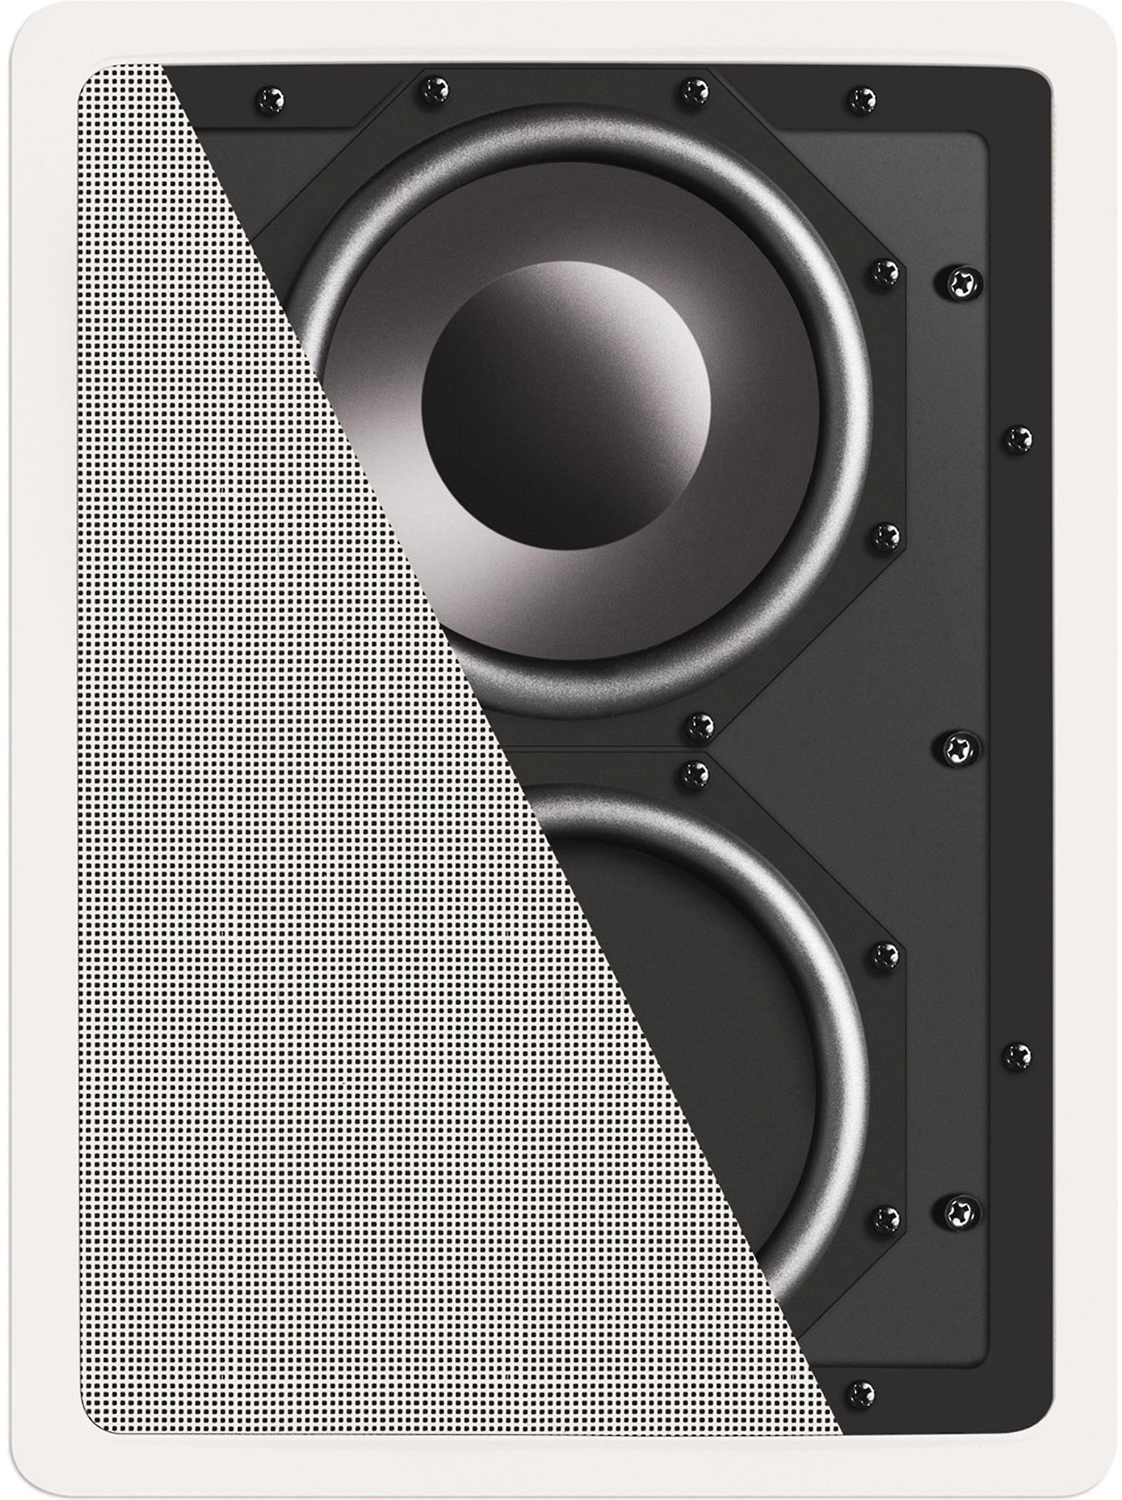 DEFINITIVE TECHNOLOGY IW Sub 10/10 In-Wall Subwoofer (requires amp)